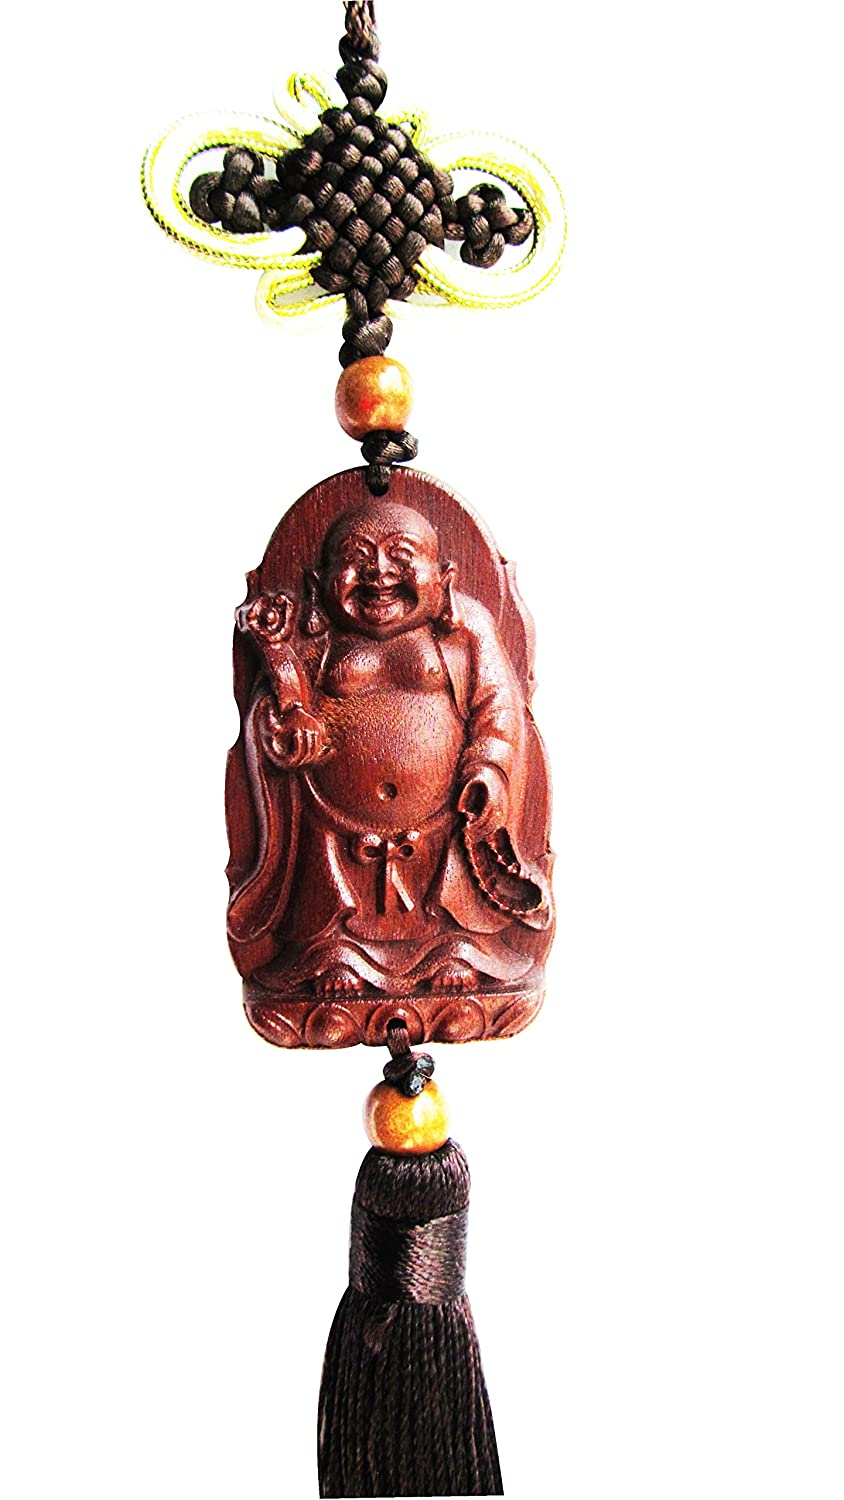 CHN Elements.home&kitchen WCH13-Peach Wood Carved Feng Shui Lucky Charm-Buddha For Happiness & Wishes Come True China Elements